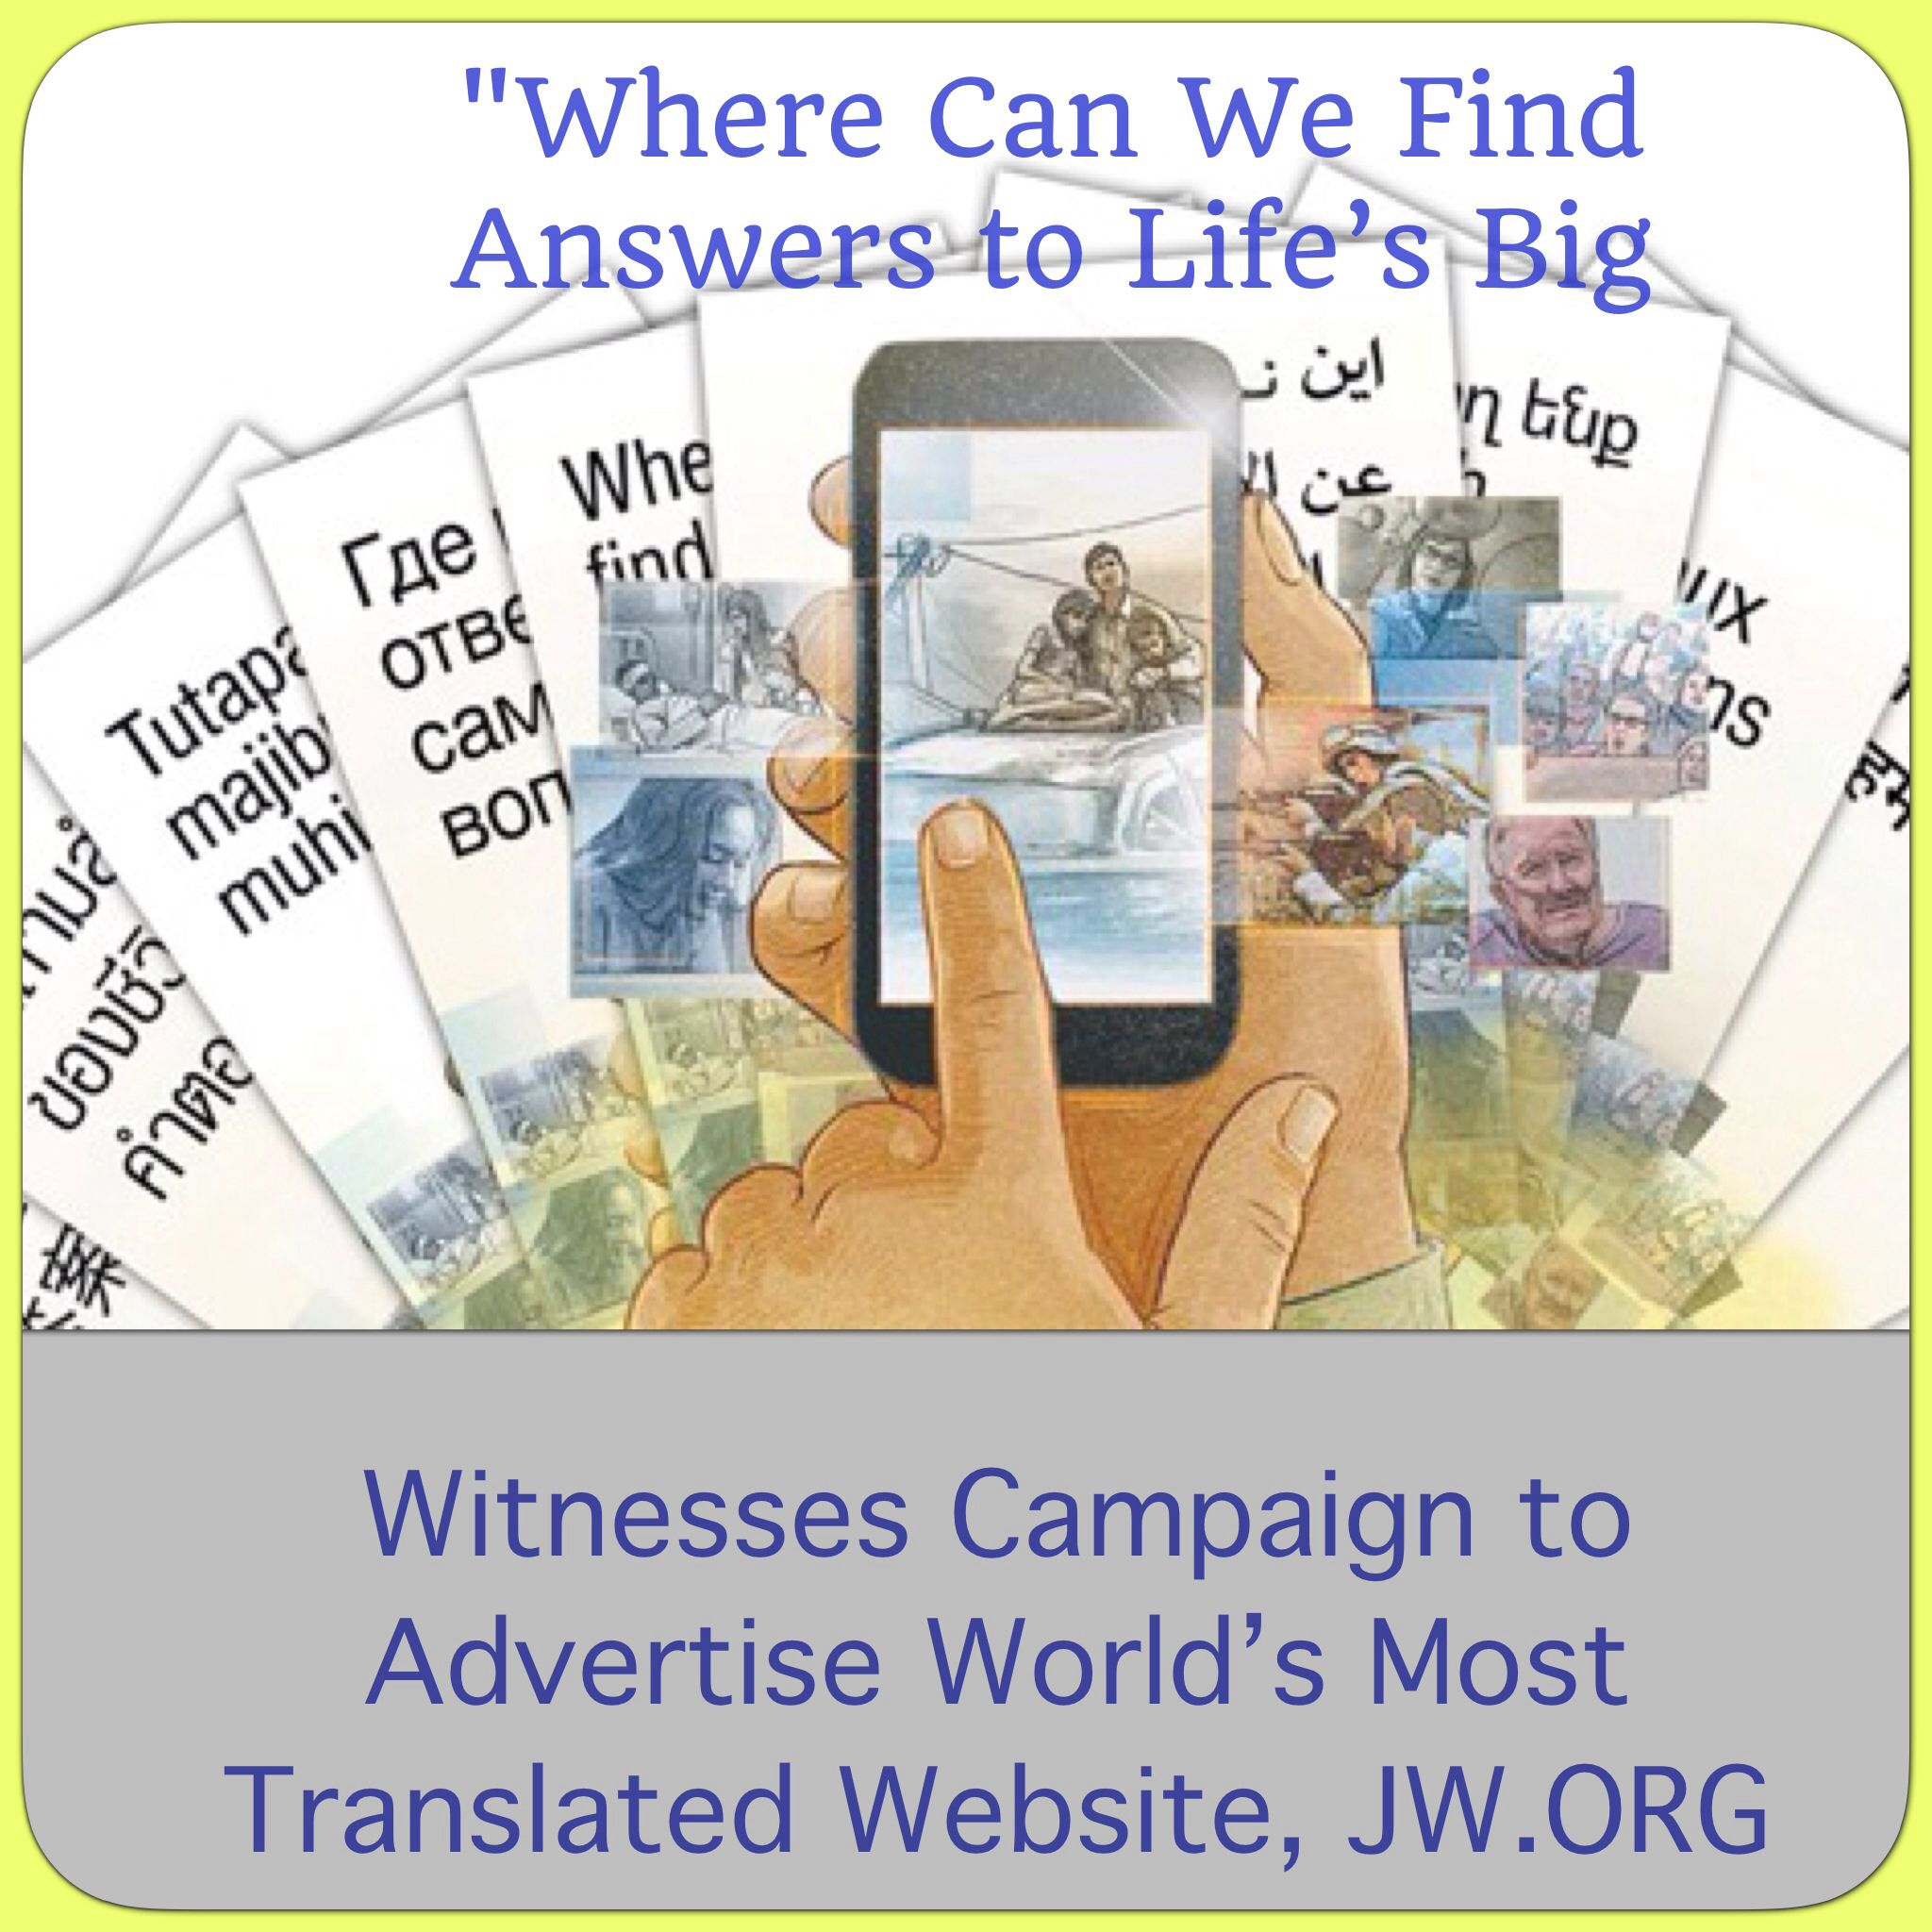 Witnesses Campaign to Advertise World's Most Translated